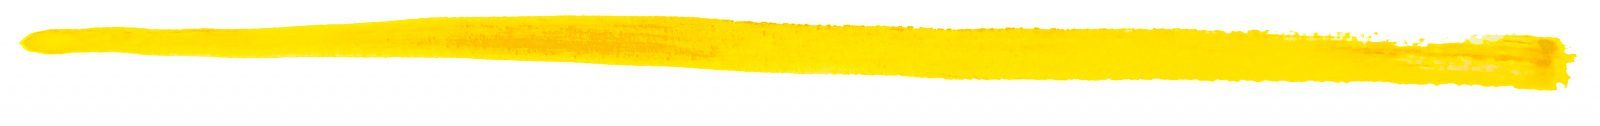 escape-the-toxic-office-yellow-line